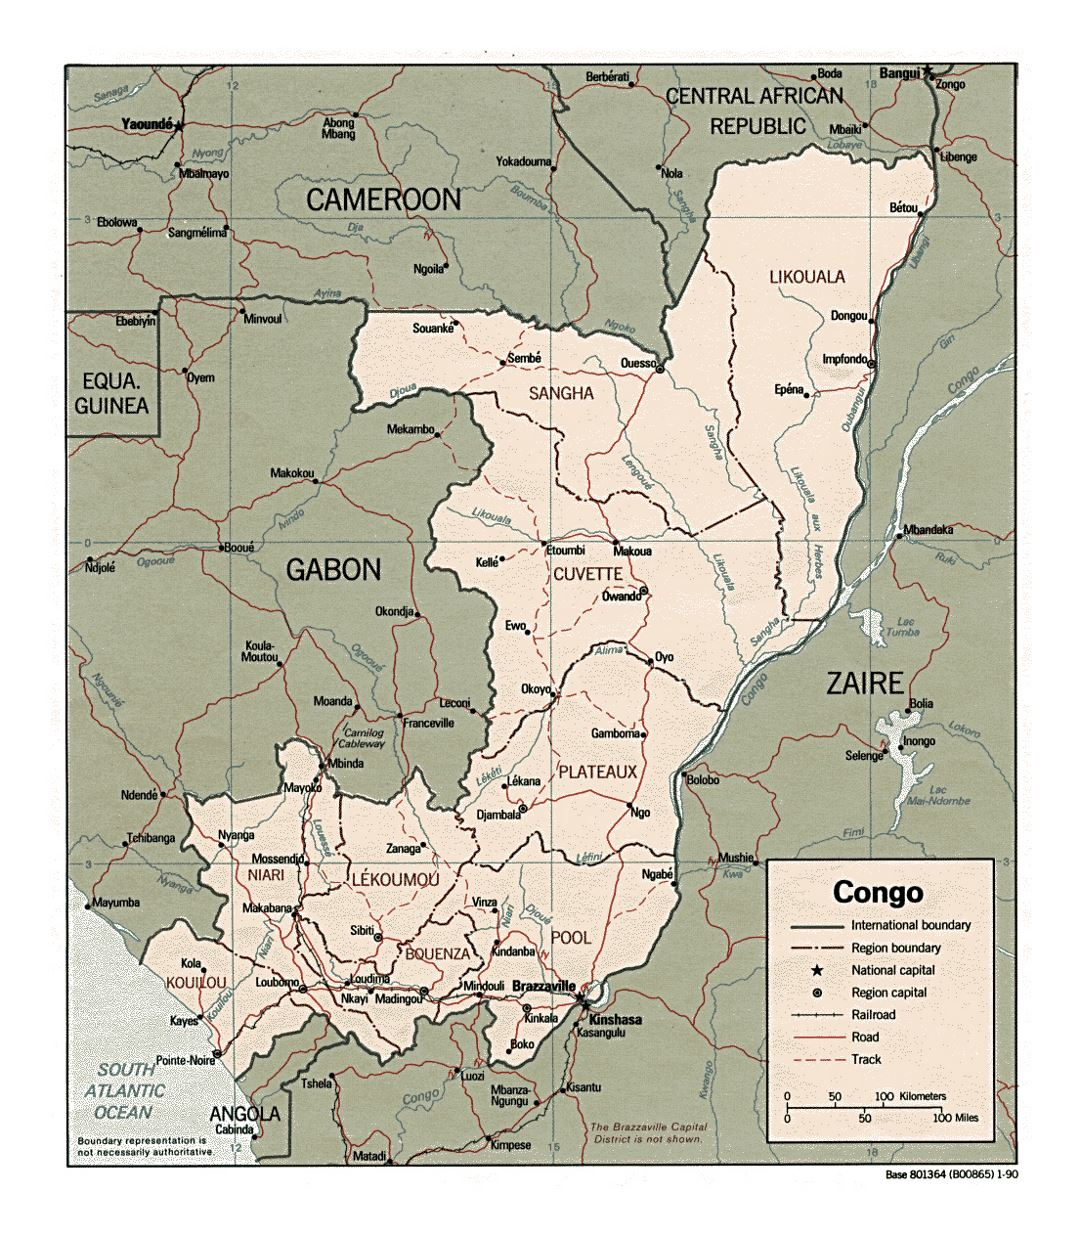 Detailed political and administrative map of Congo with roads, railroads and major cities - 1990